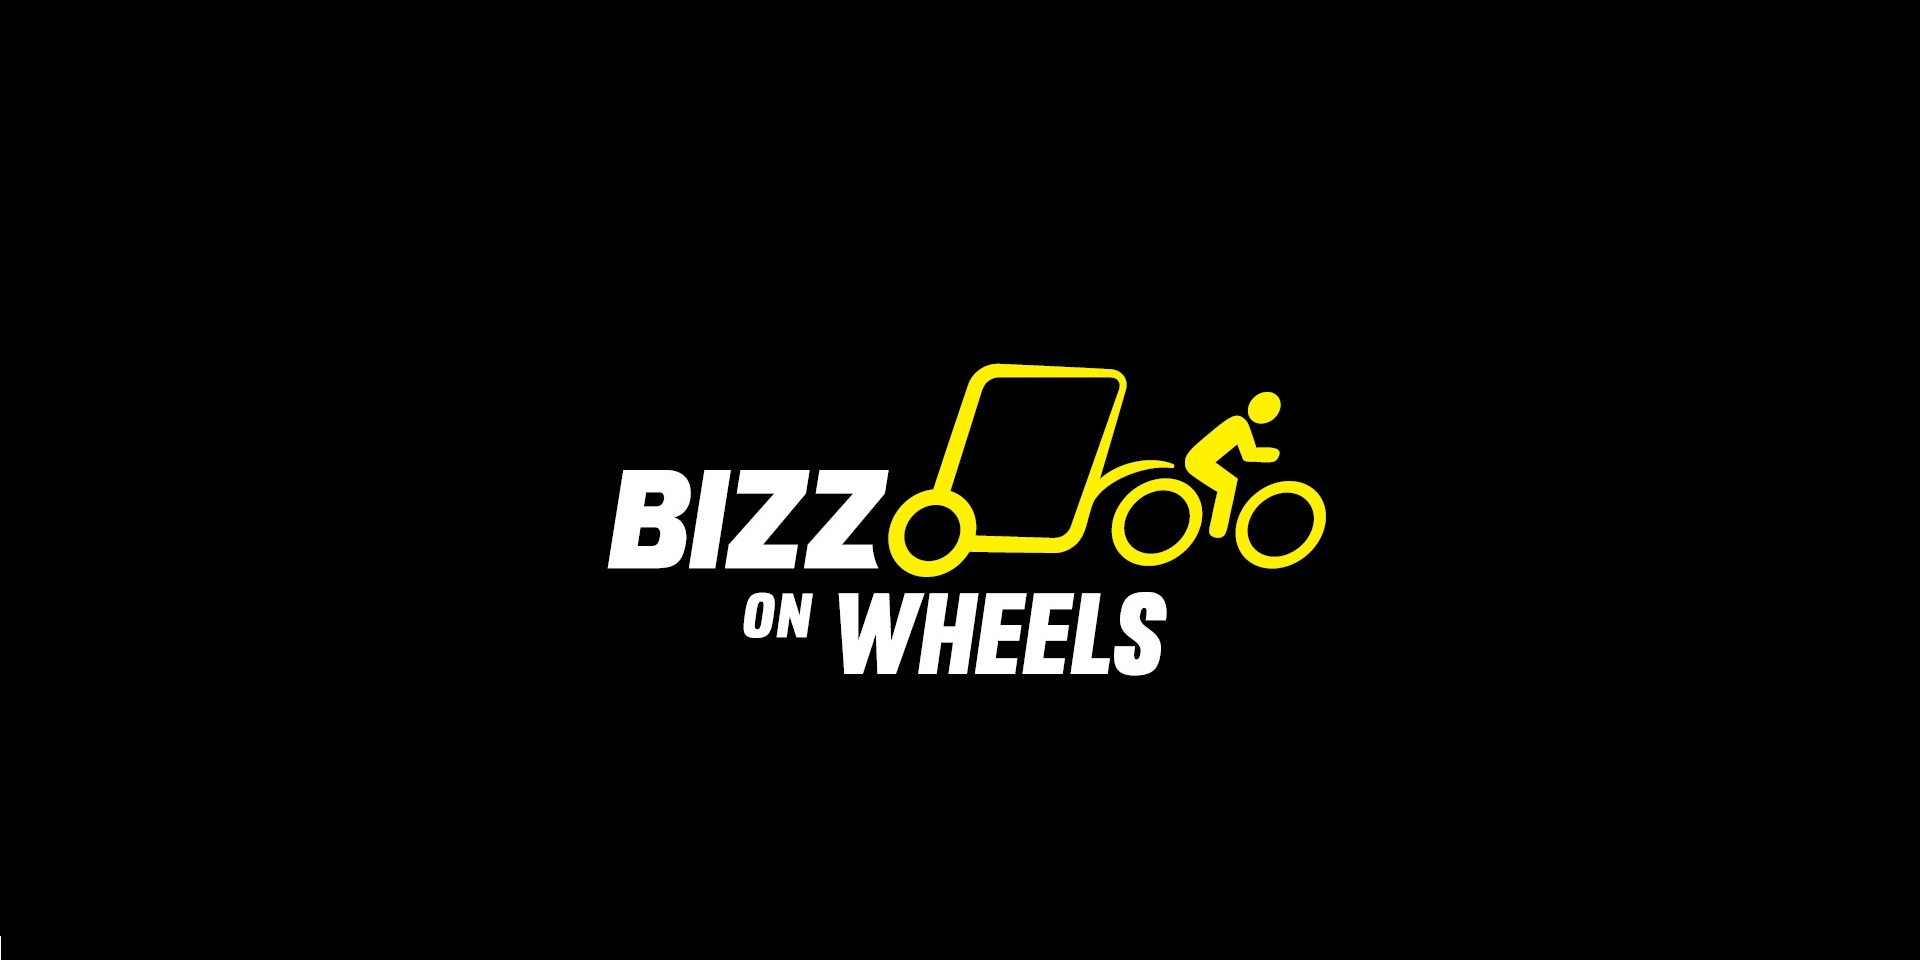 Bizz on wheels